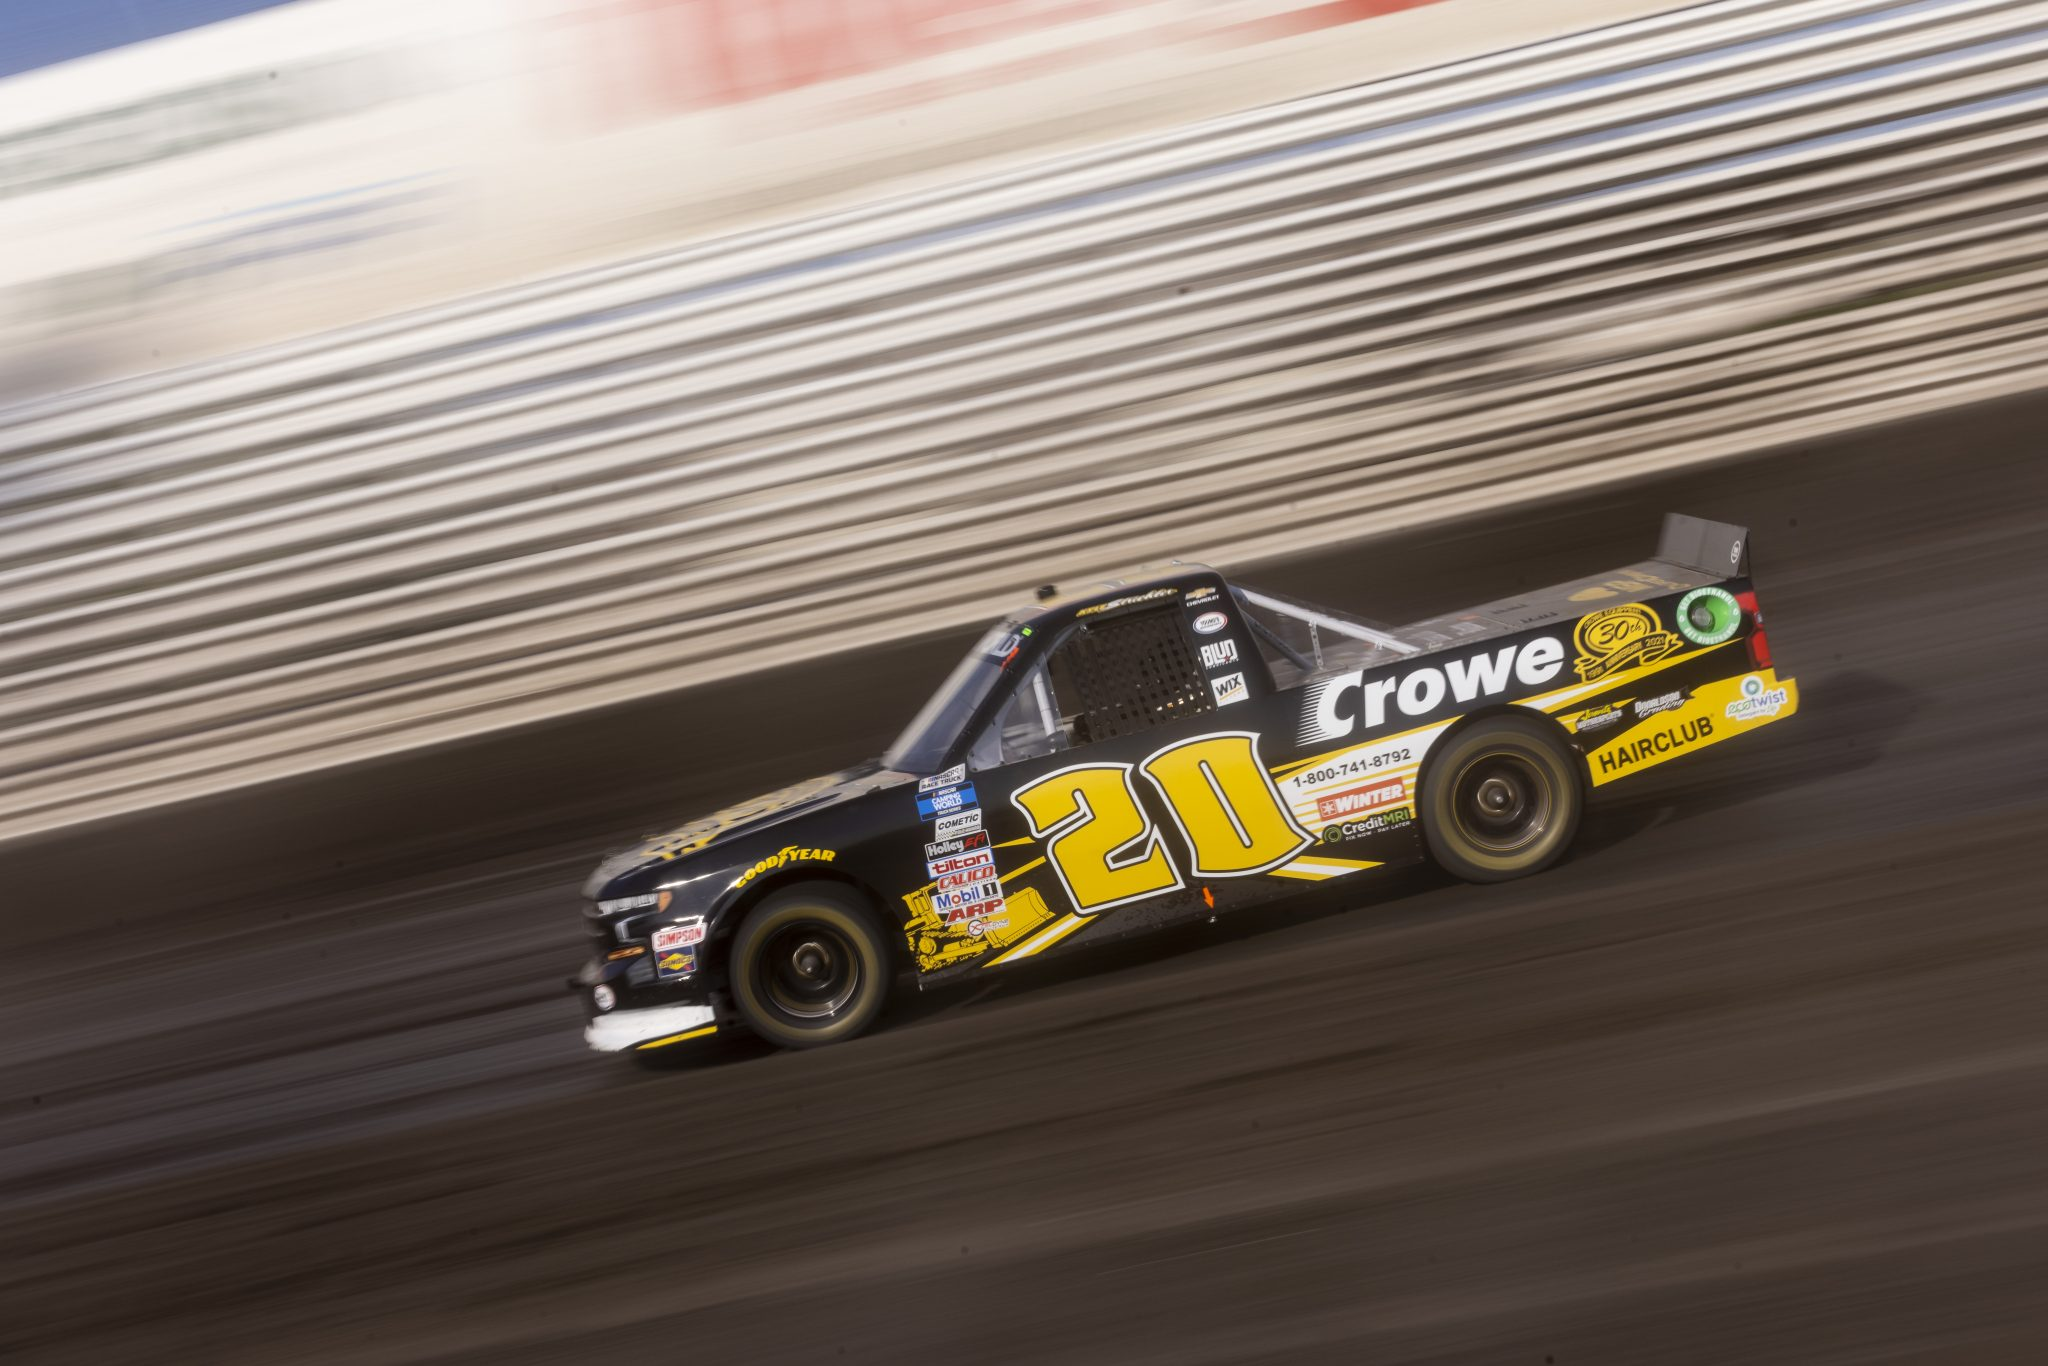 KNOXVILLE, IOWA - JULY 08: Kyle Strickler, driver of the #20 Crowe Equipment Chevrolet, drives during practice for the NASCAR Camping World Truck Series Corn Belt 150 presented by Premier Chevy Dealers at Knoxville Raceway on July 08, 2021 in Knoxville, Iowa. (Photo by James Gilbert/Getty Images) | Getty Images